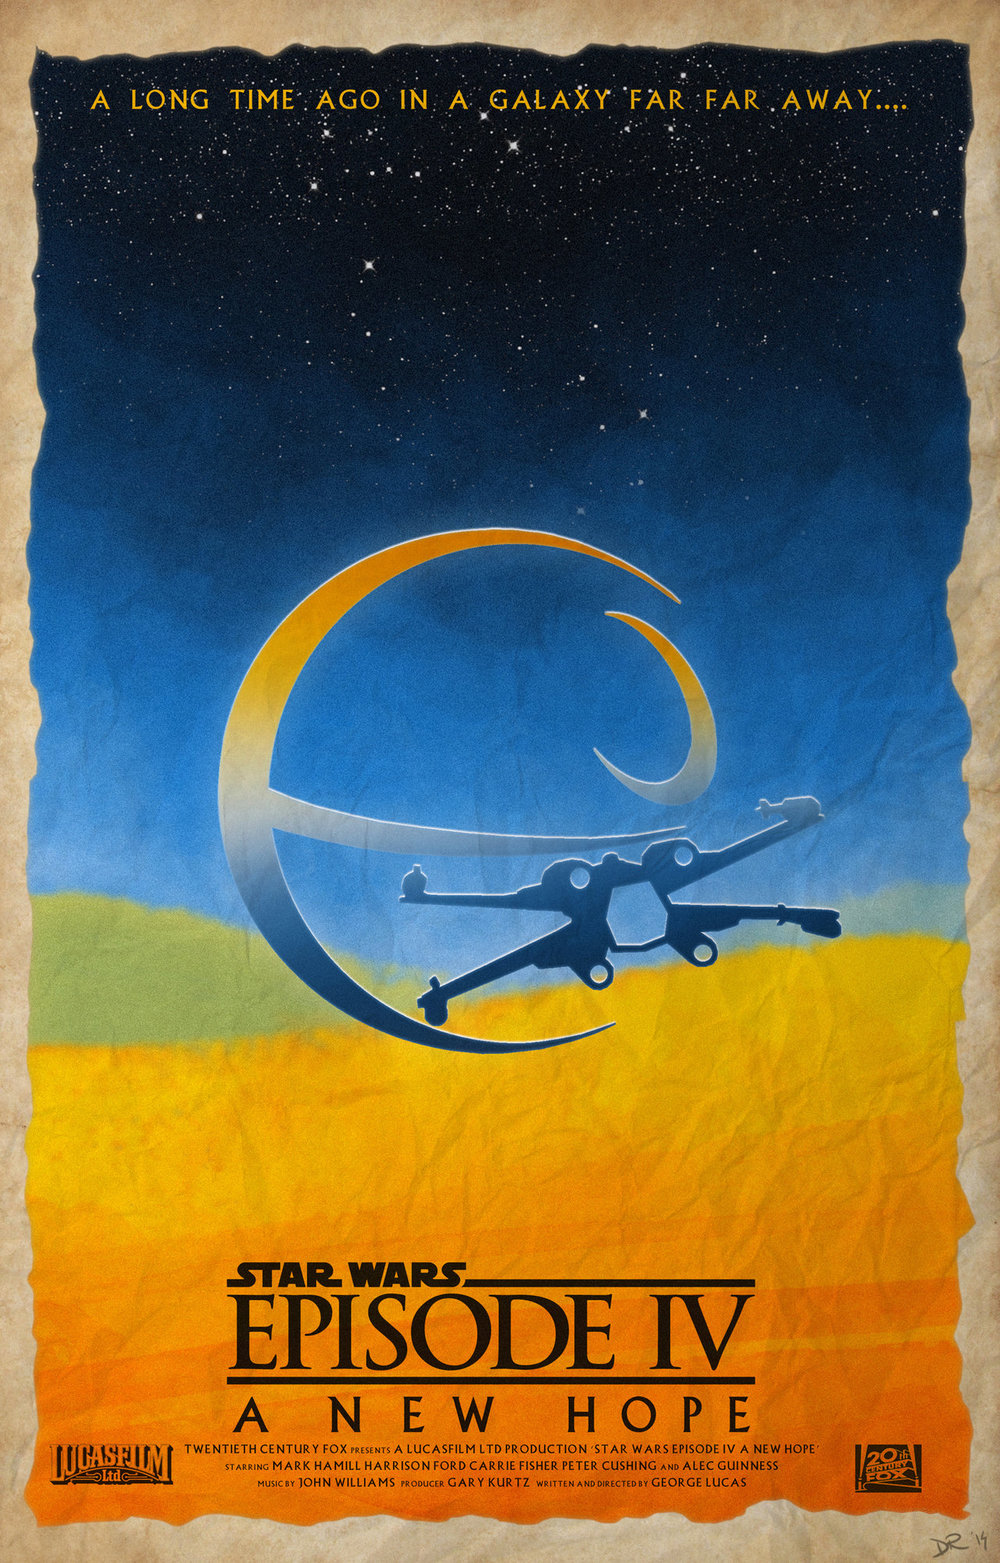 star-wars-trilogy-poster-art-by-daniele-rossini